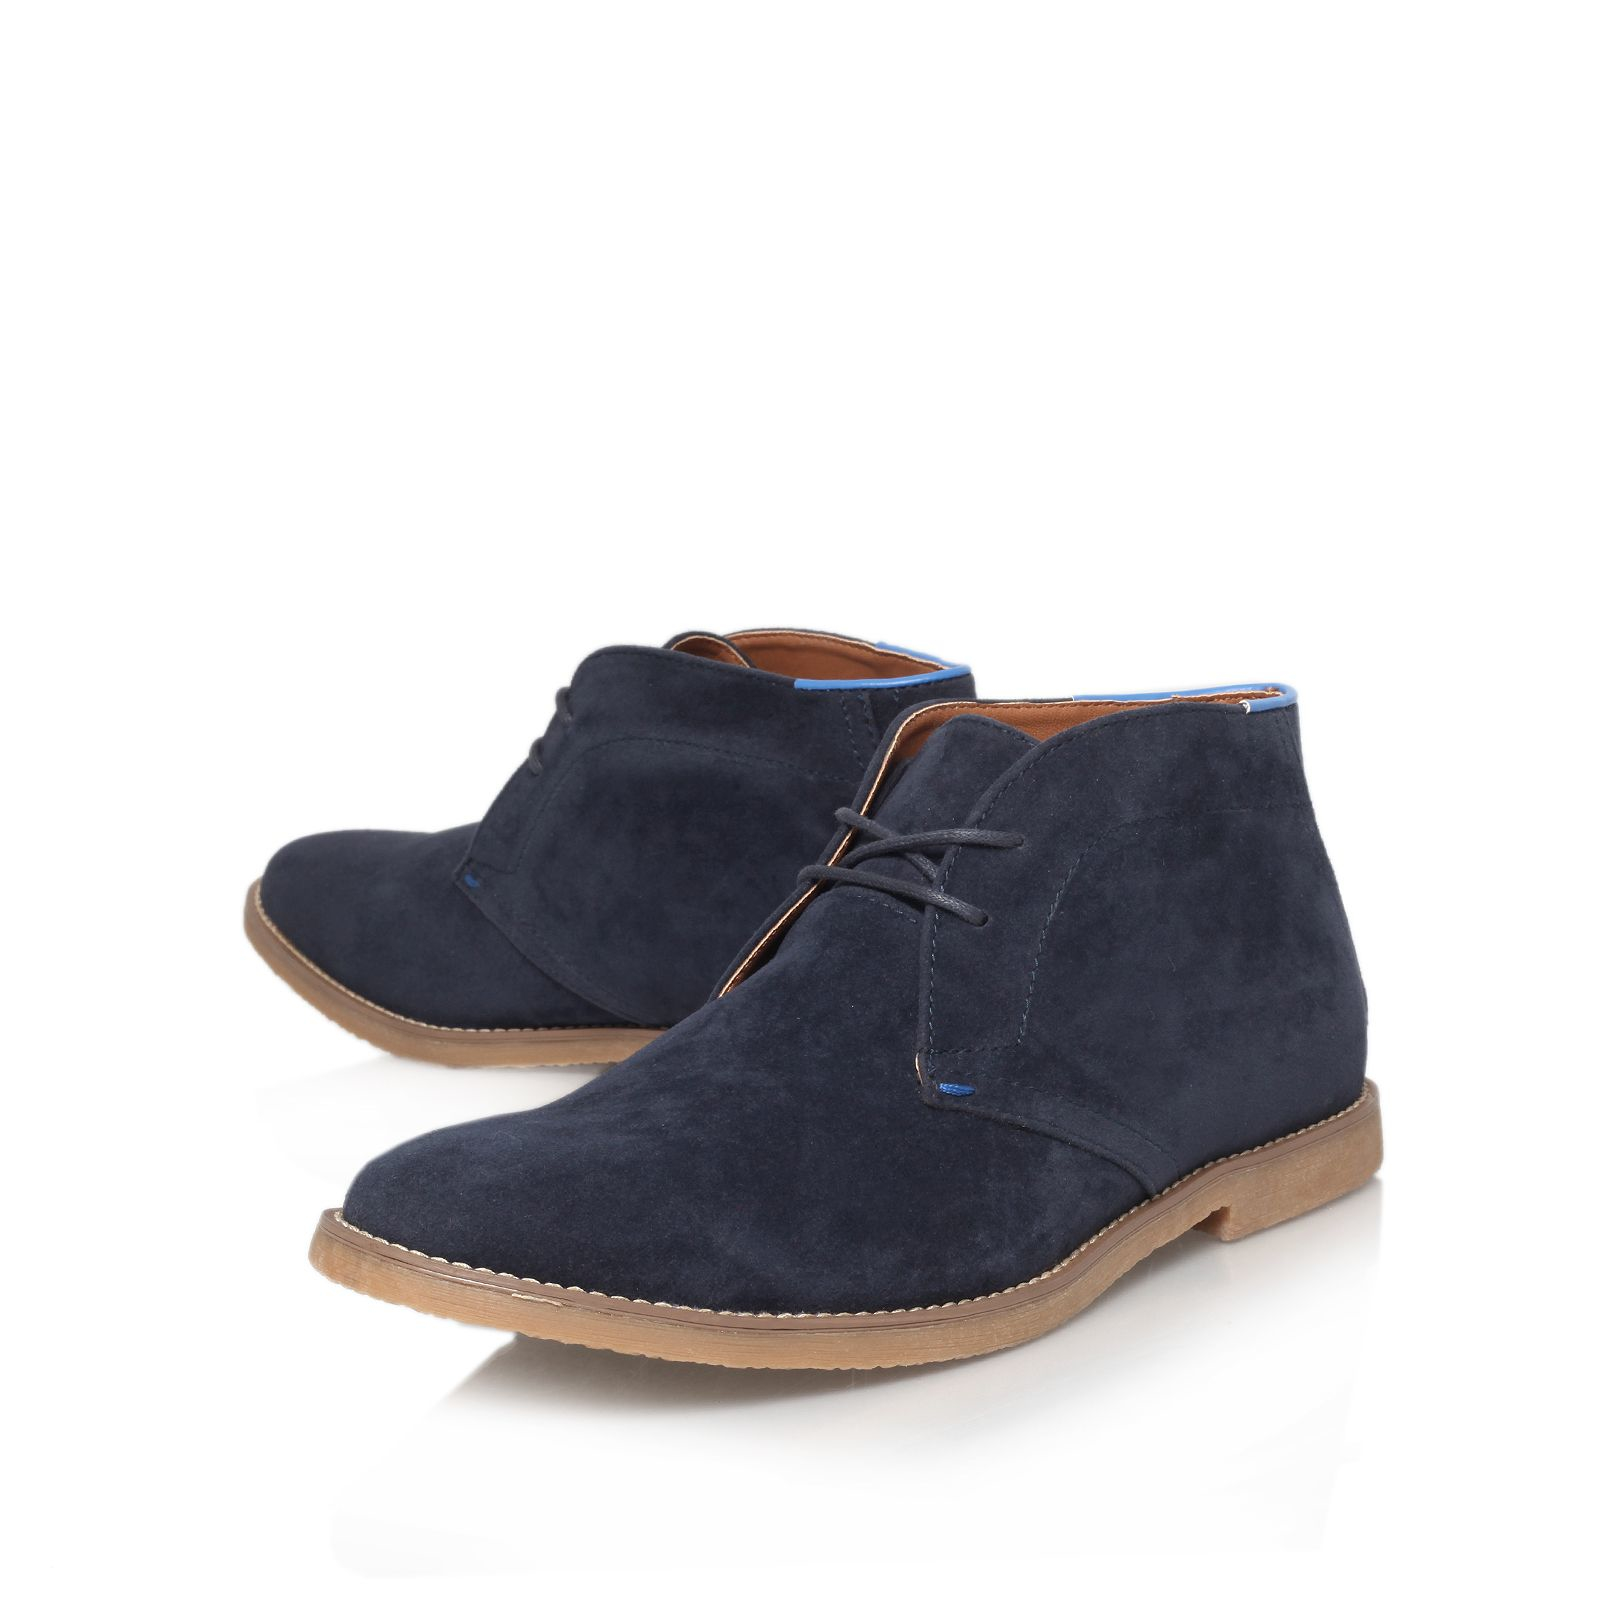 Lyst Kg By Kurt Geiger Bedford Tan Boots In Black For Men D Island Shoes Casual Zappato England Suede Dark Brown Gallery